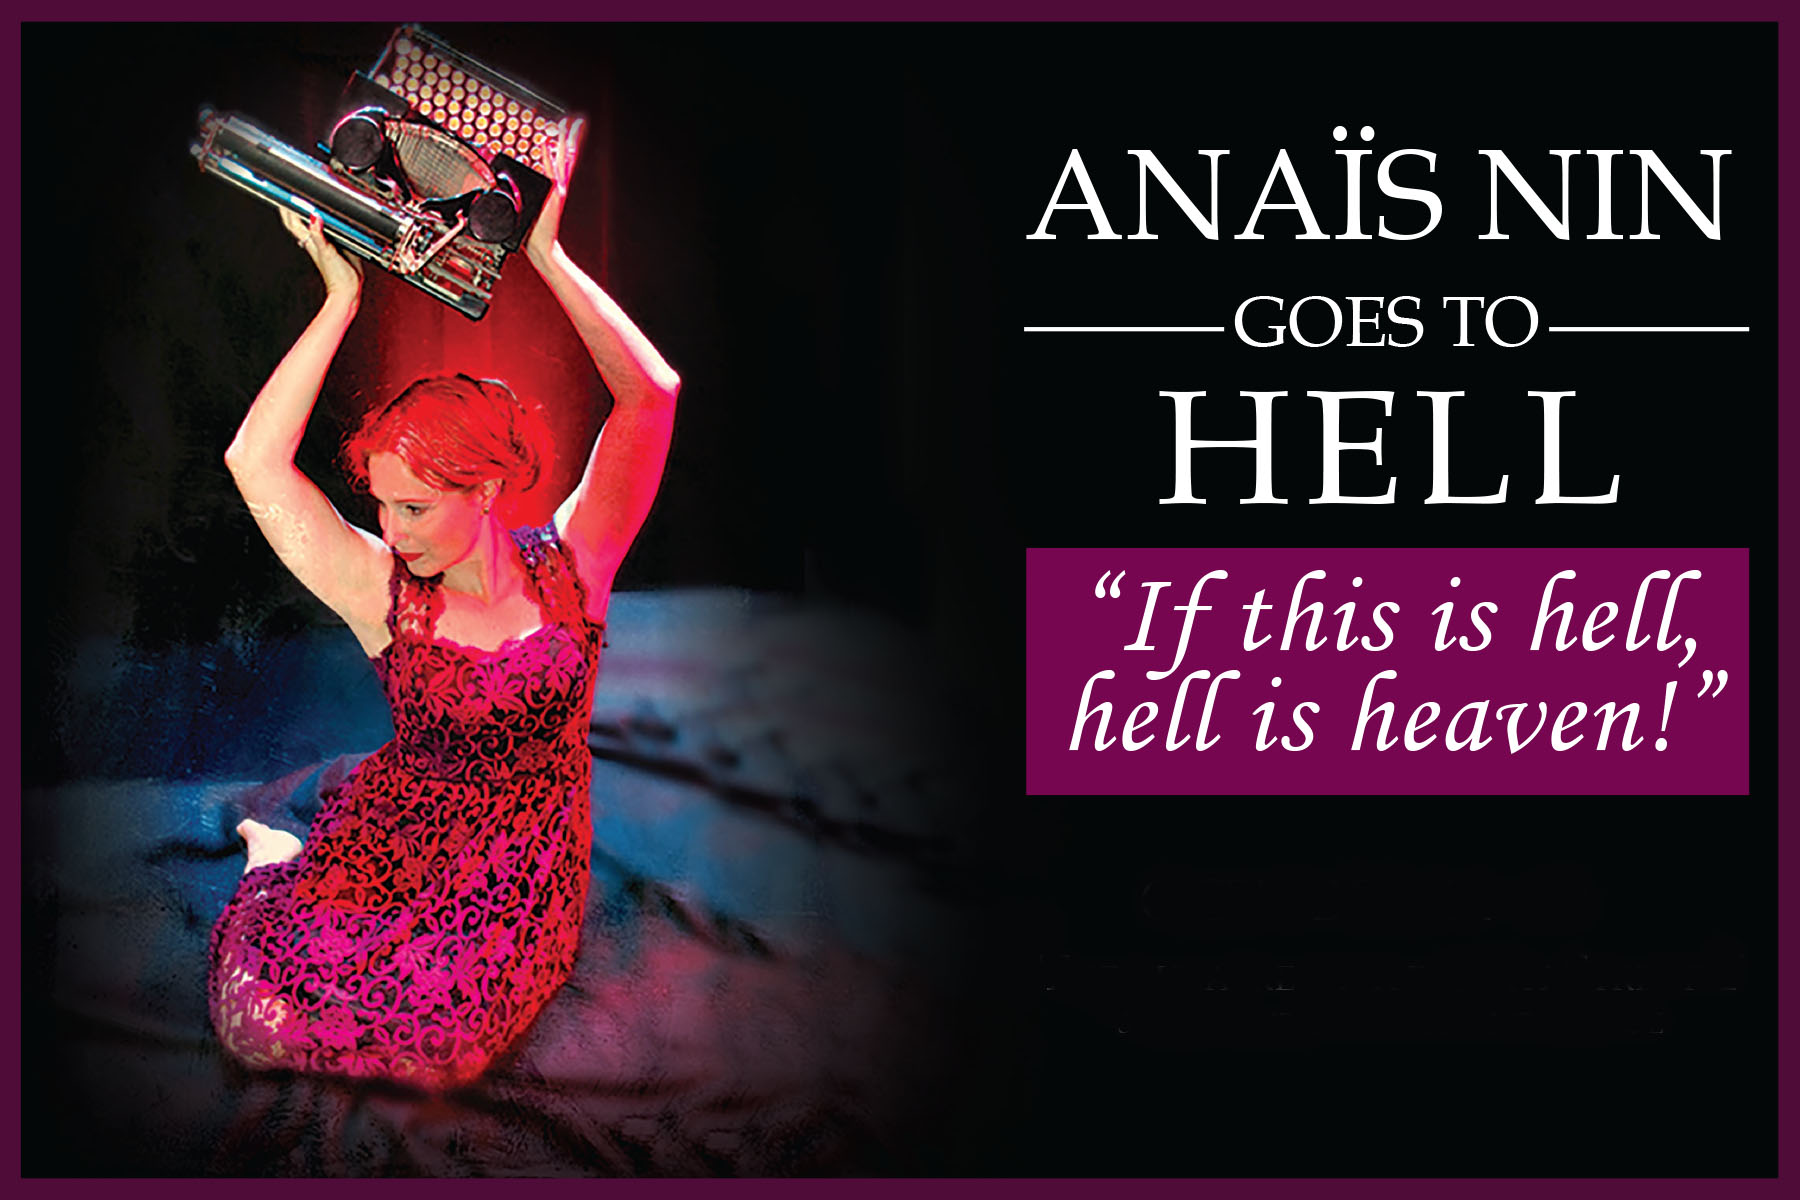 Anais Nin Goes to Hell